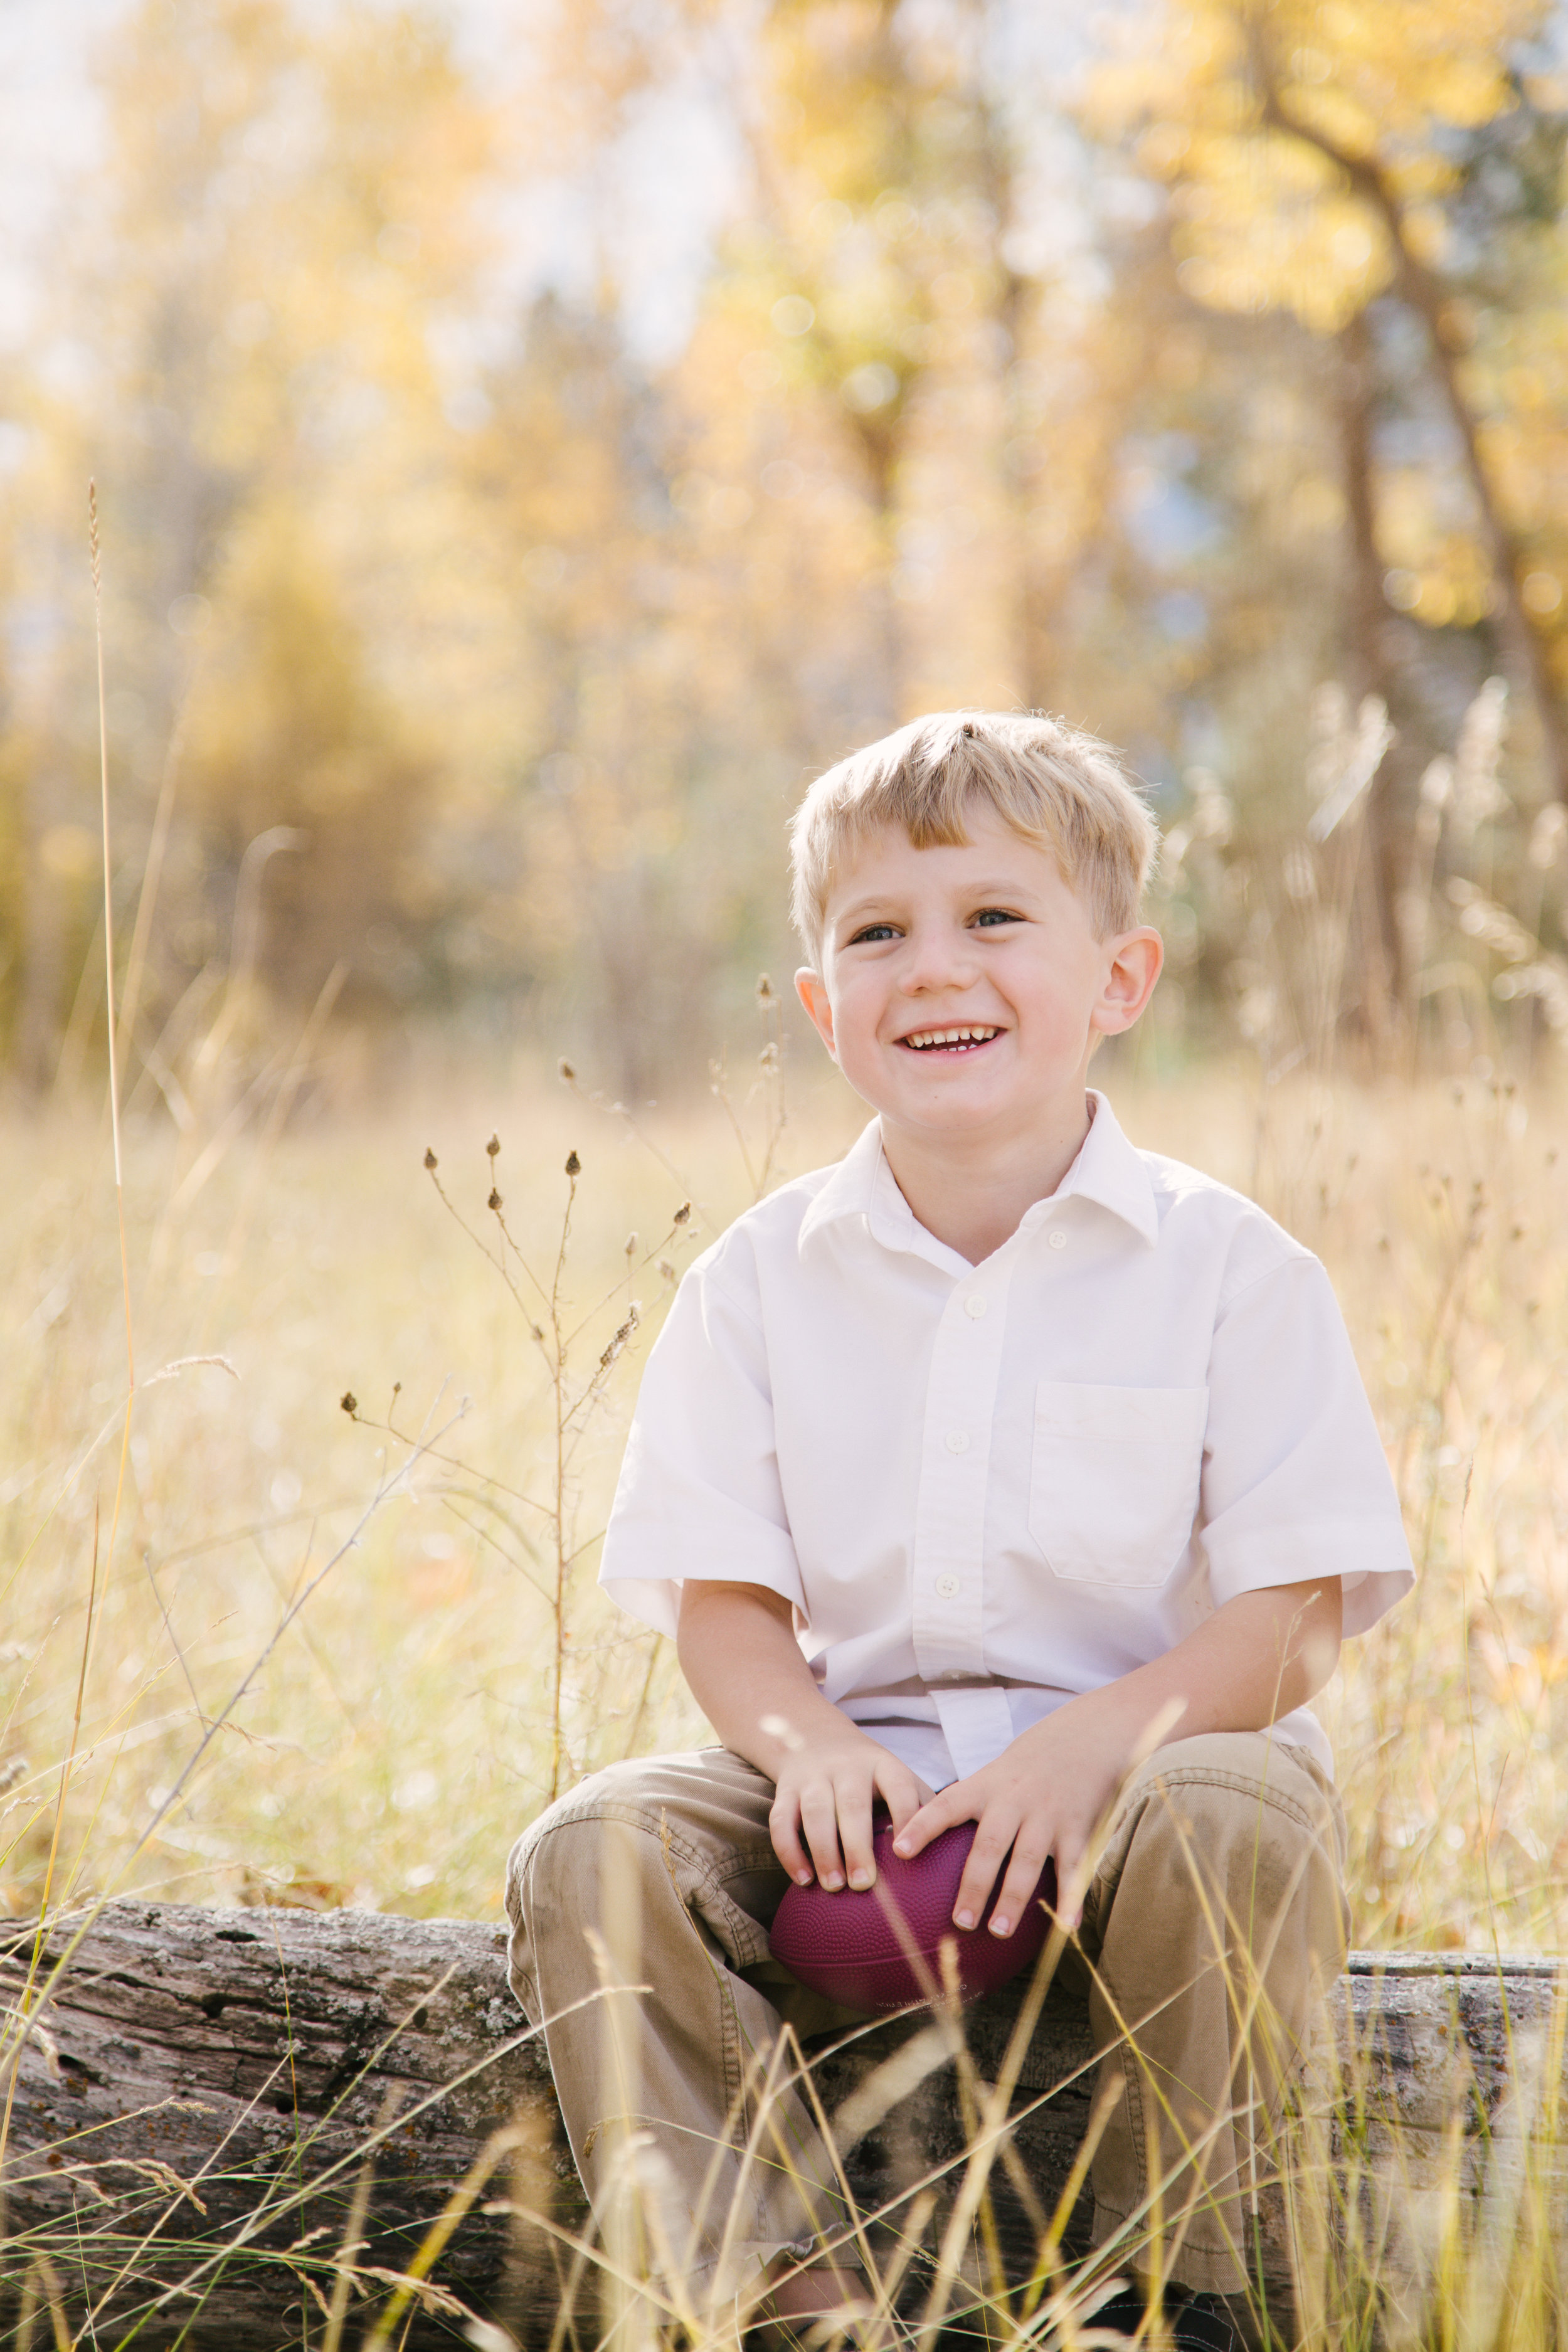 ashleytintingerphotography.com - Missoula Family Photographer - Laufenberg SP - 15.jpg